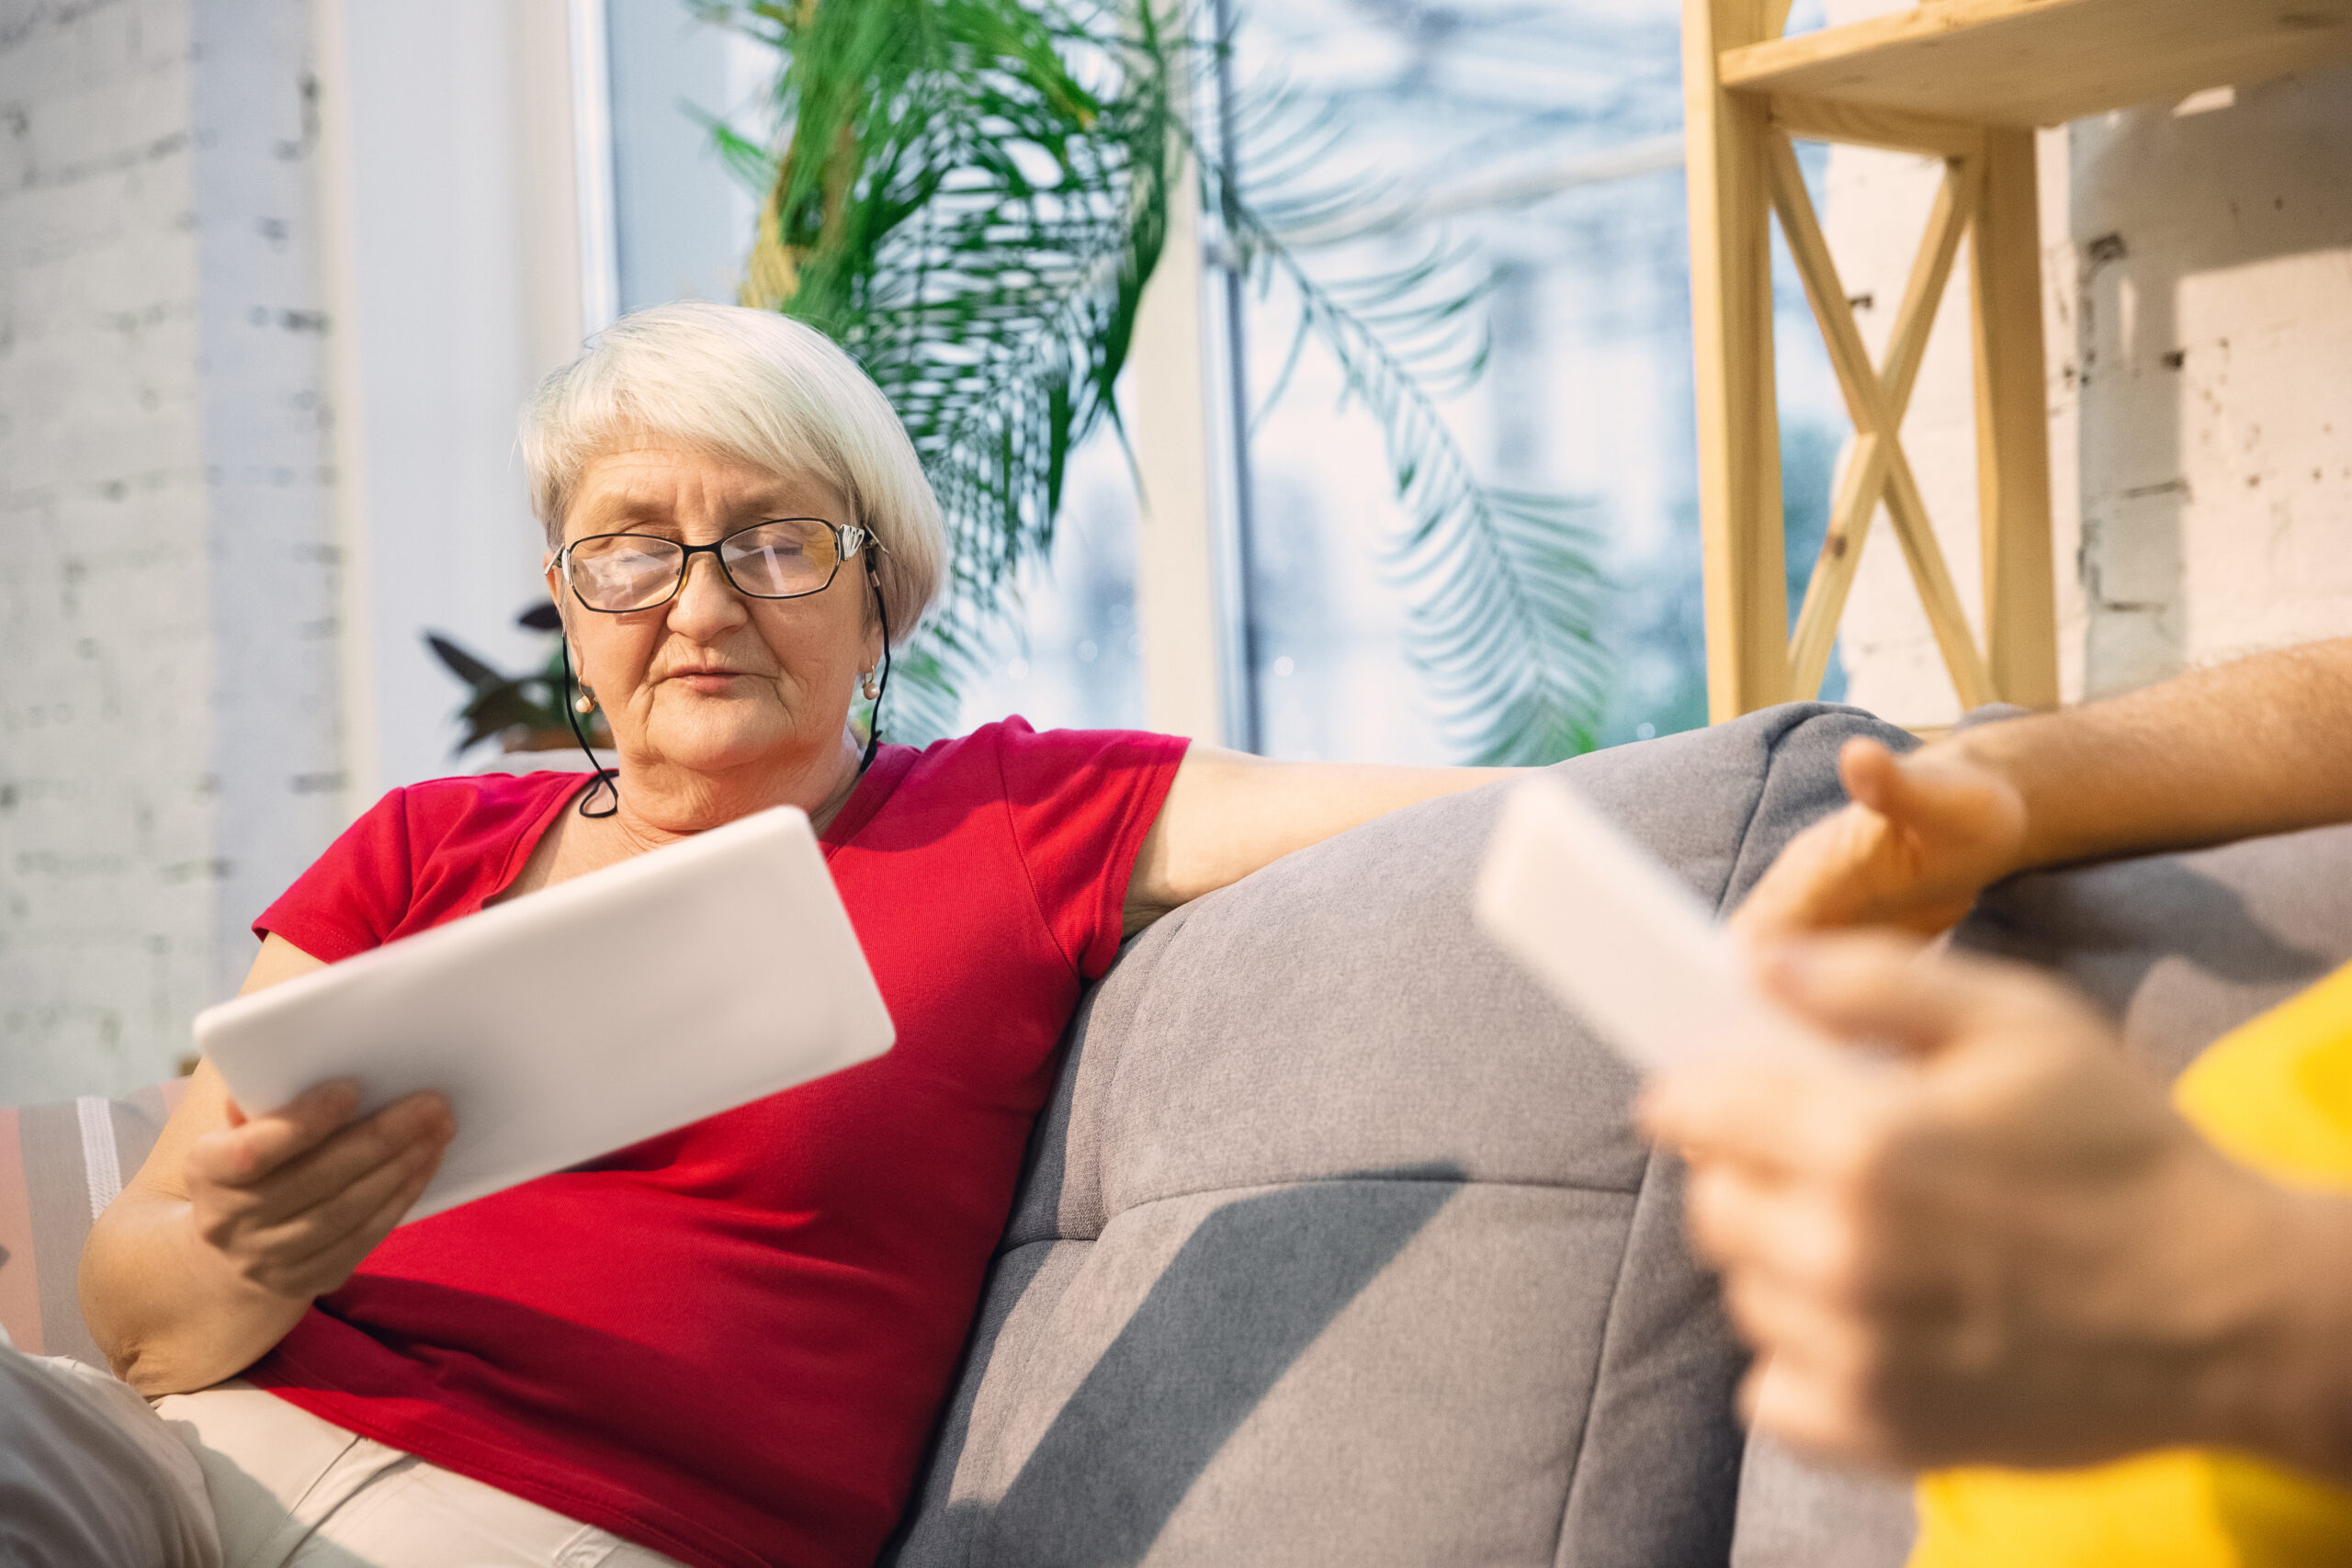 Could selling a vacation property affect government pensions?